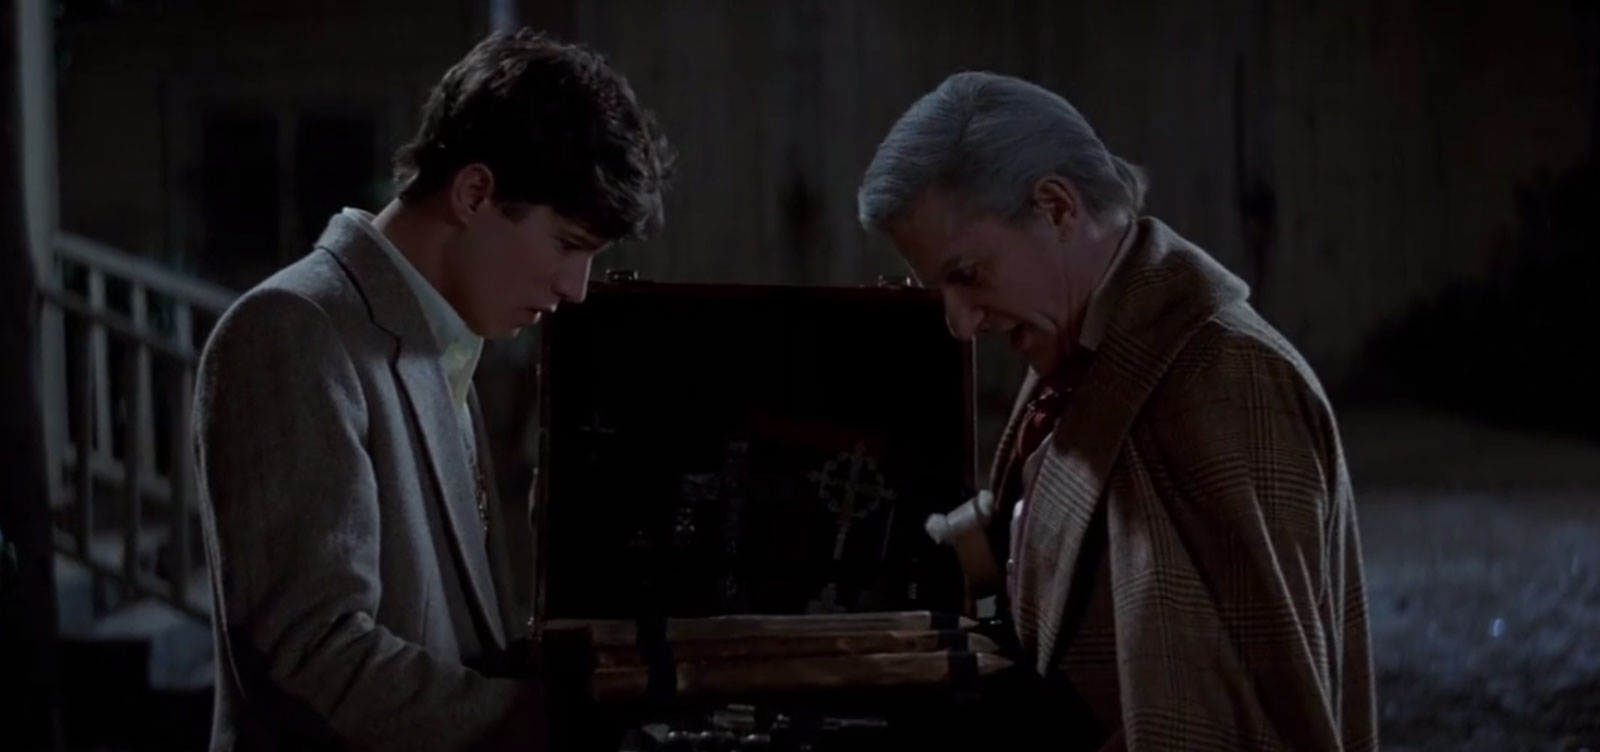 Fright_Night_85_Review_Images_V04